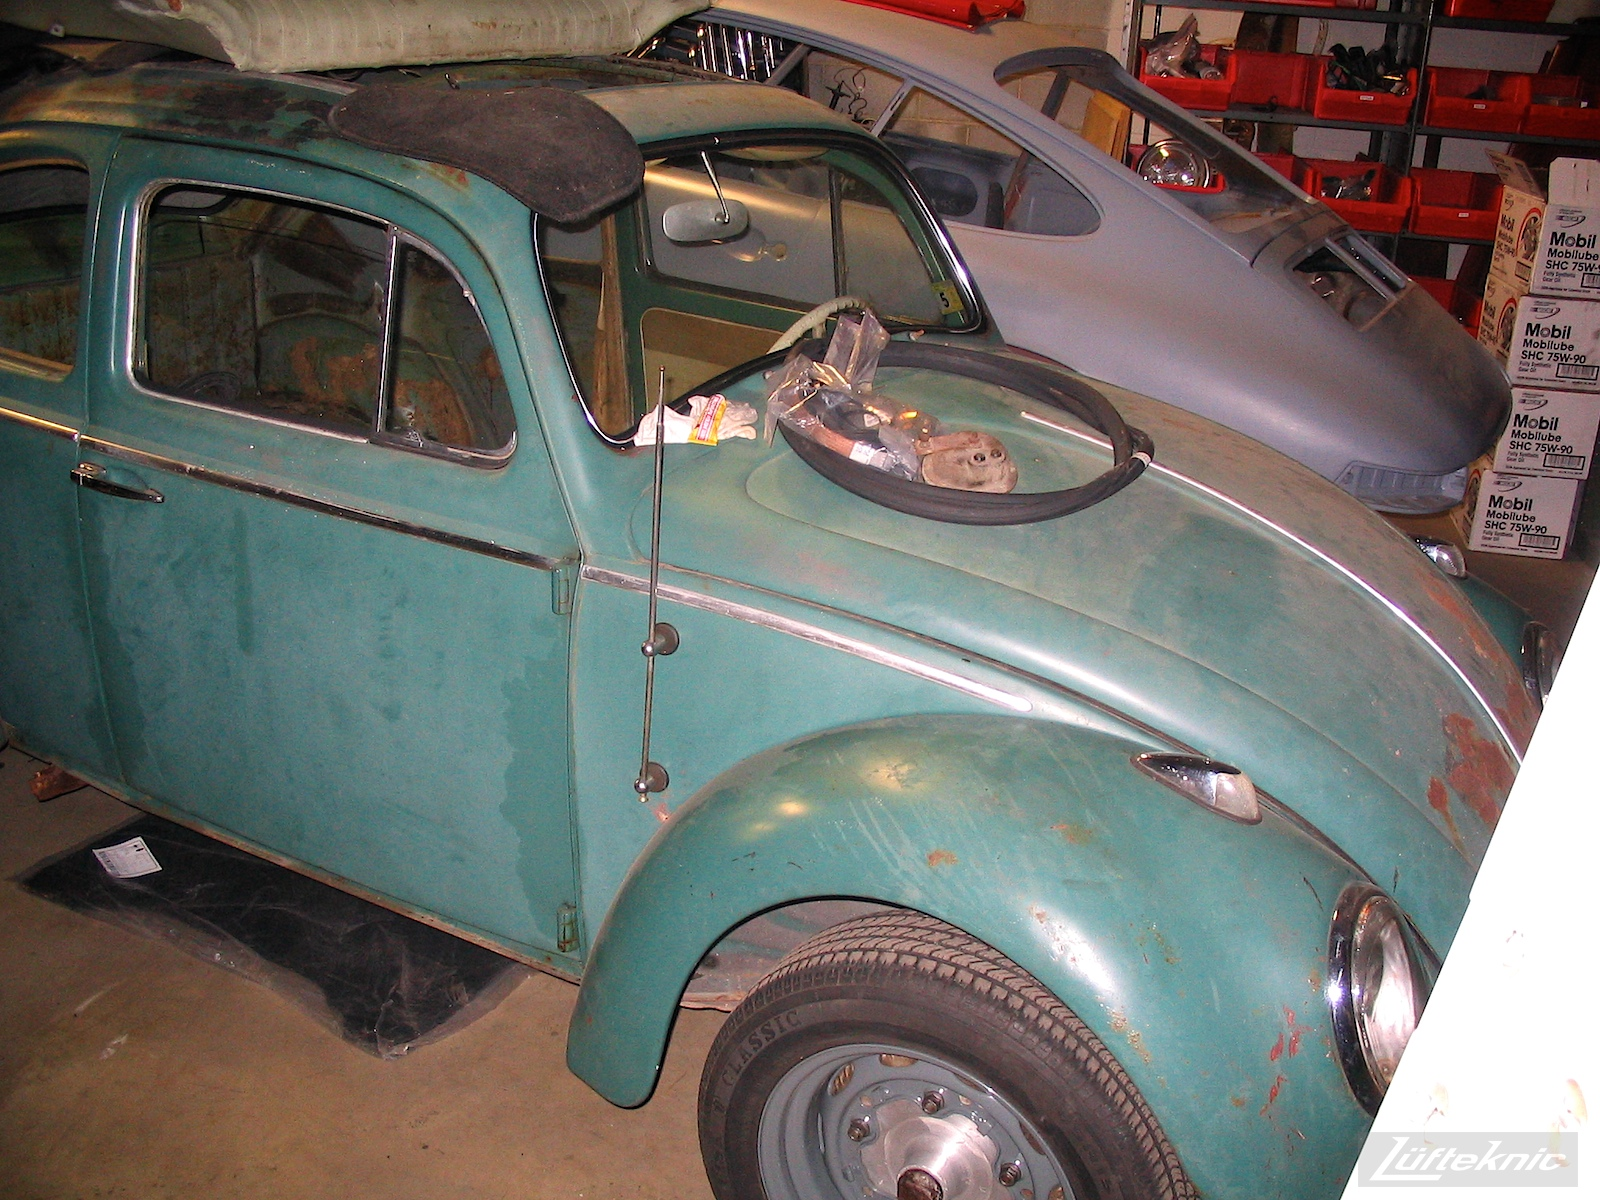 All original 1960 Beetle with a Porsche 356 engine and brakes.